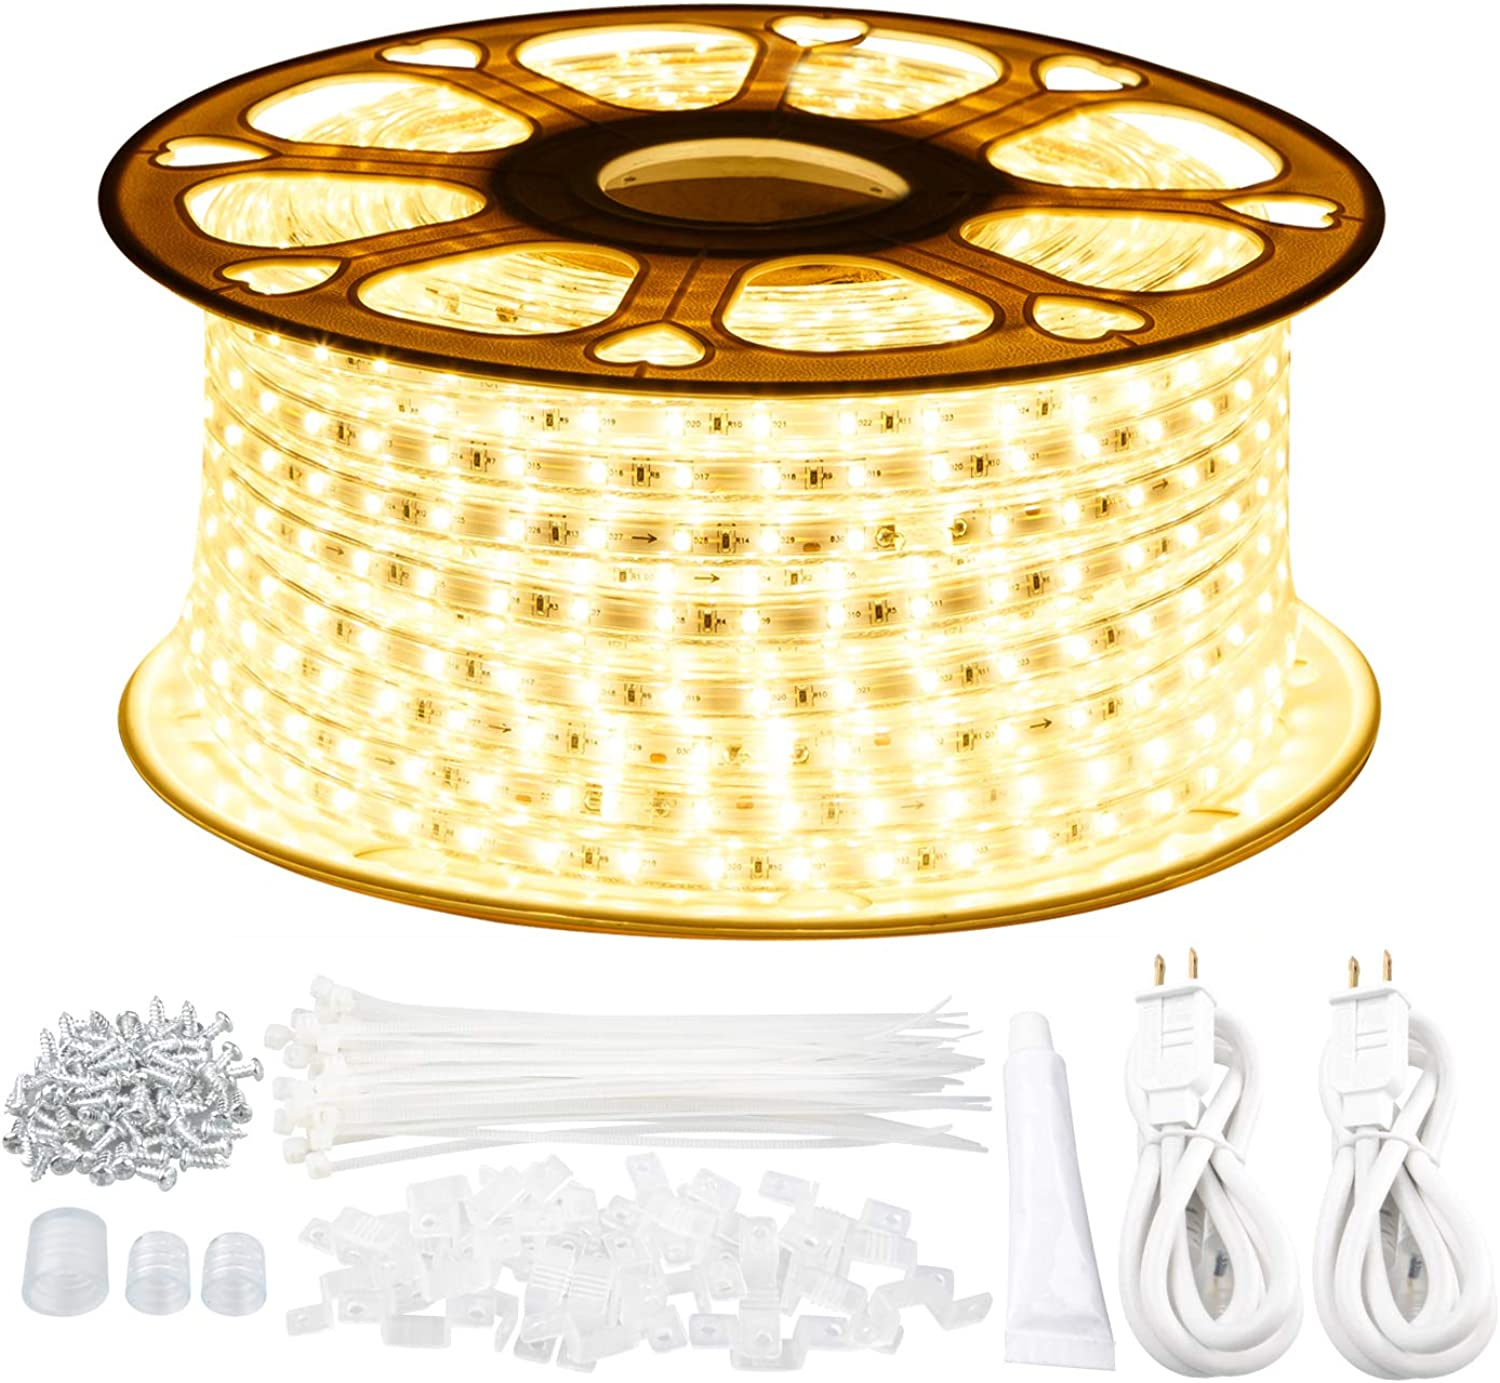 GuoTonG 131.2ft 40m LED Strip Rope Lights,Waterproof, 3000K Warm White,110V 2 Wire, Flexible, 2400 Units SMD 2835 LEDs,Indoor Outdoor Use, Ideal for Backyards, Decorative Lighting